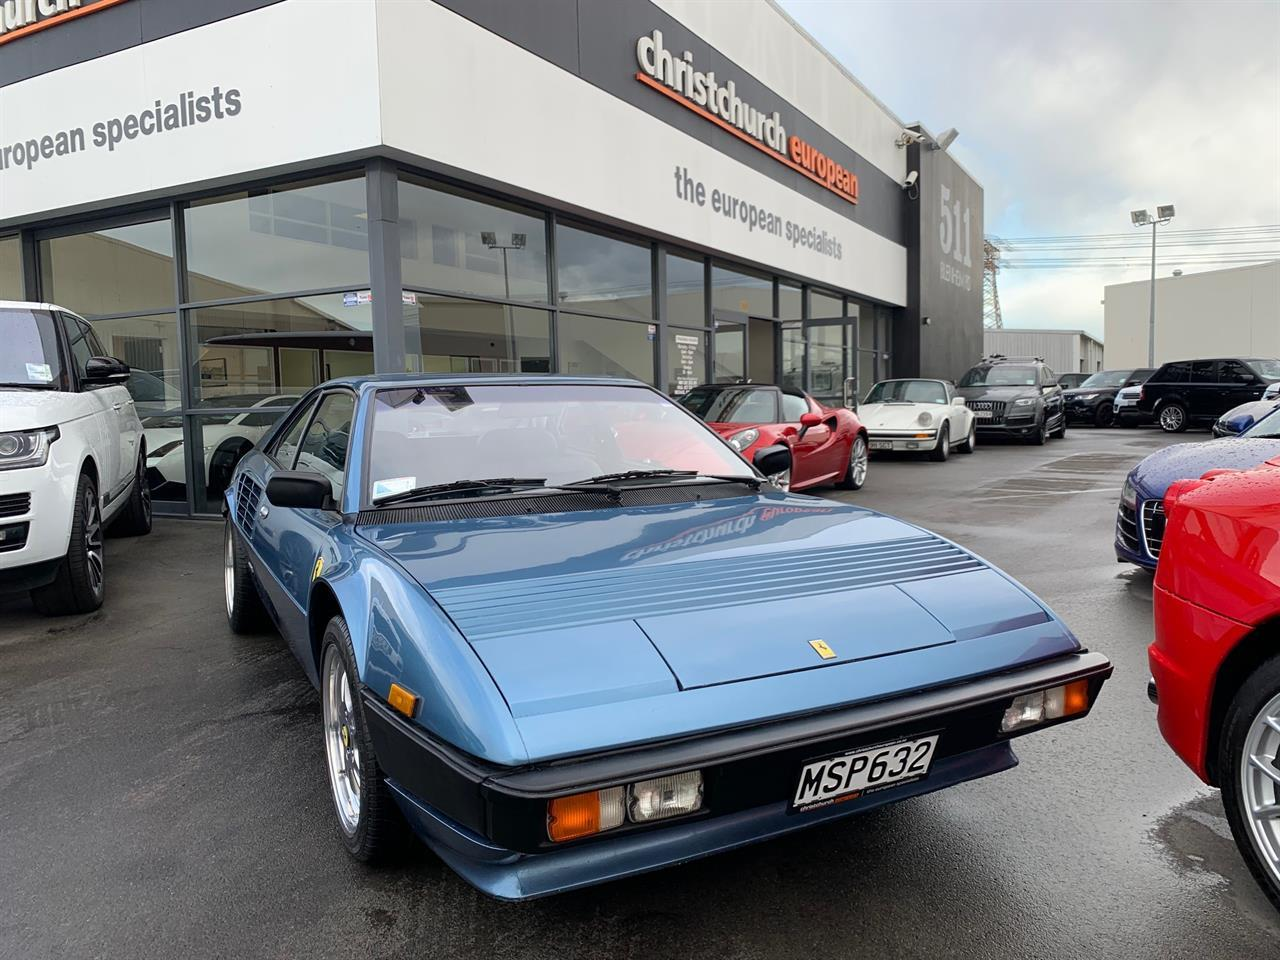 image-1, 1982 Ferrari Mondial 8 4 Seater Coupe at Christchurch